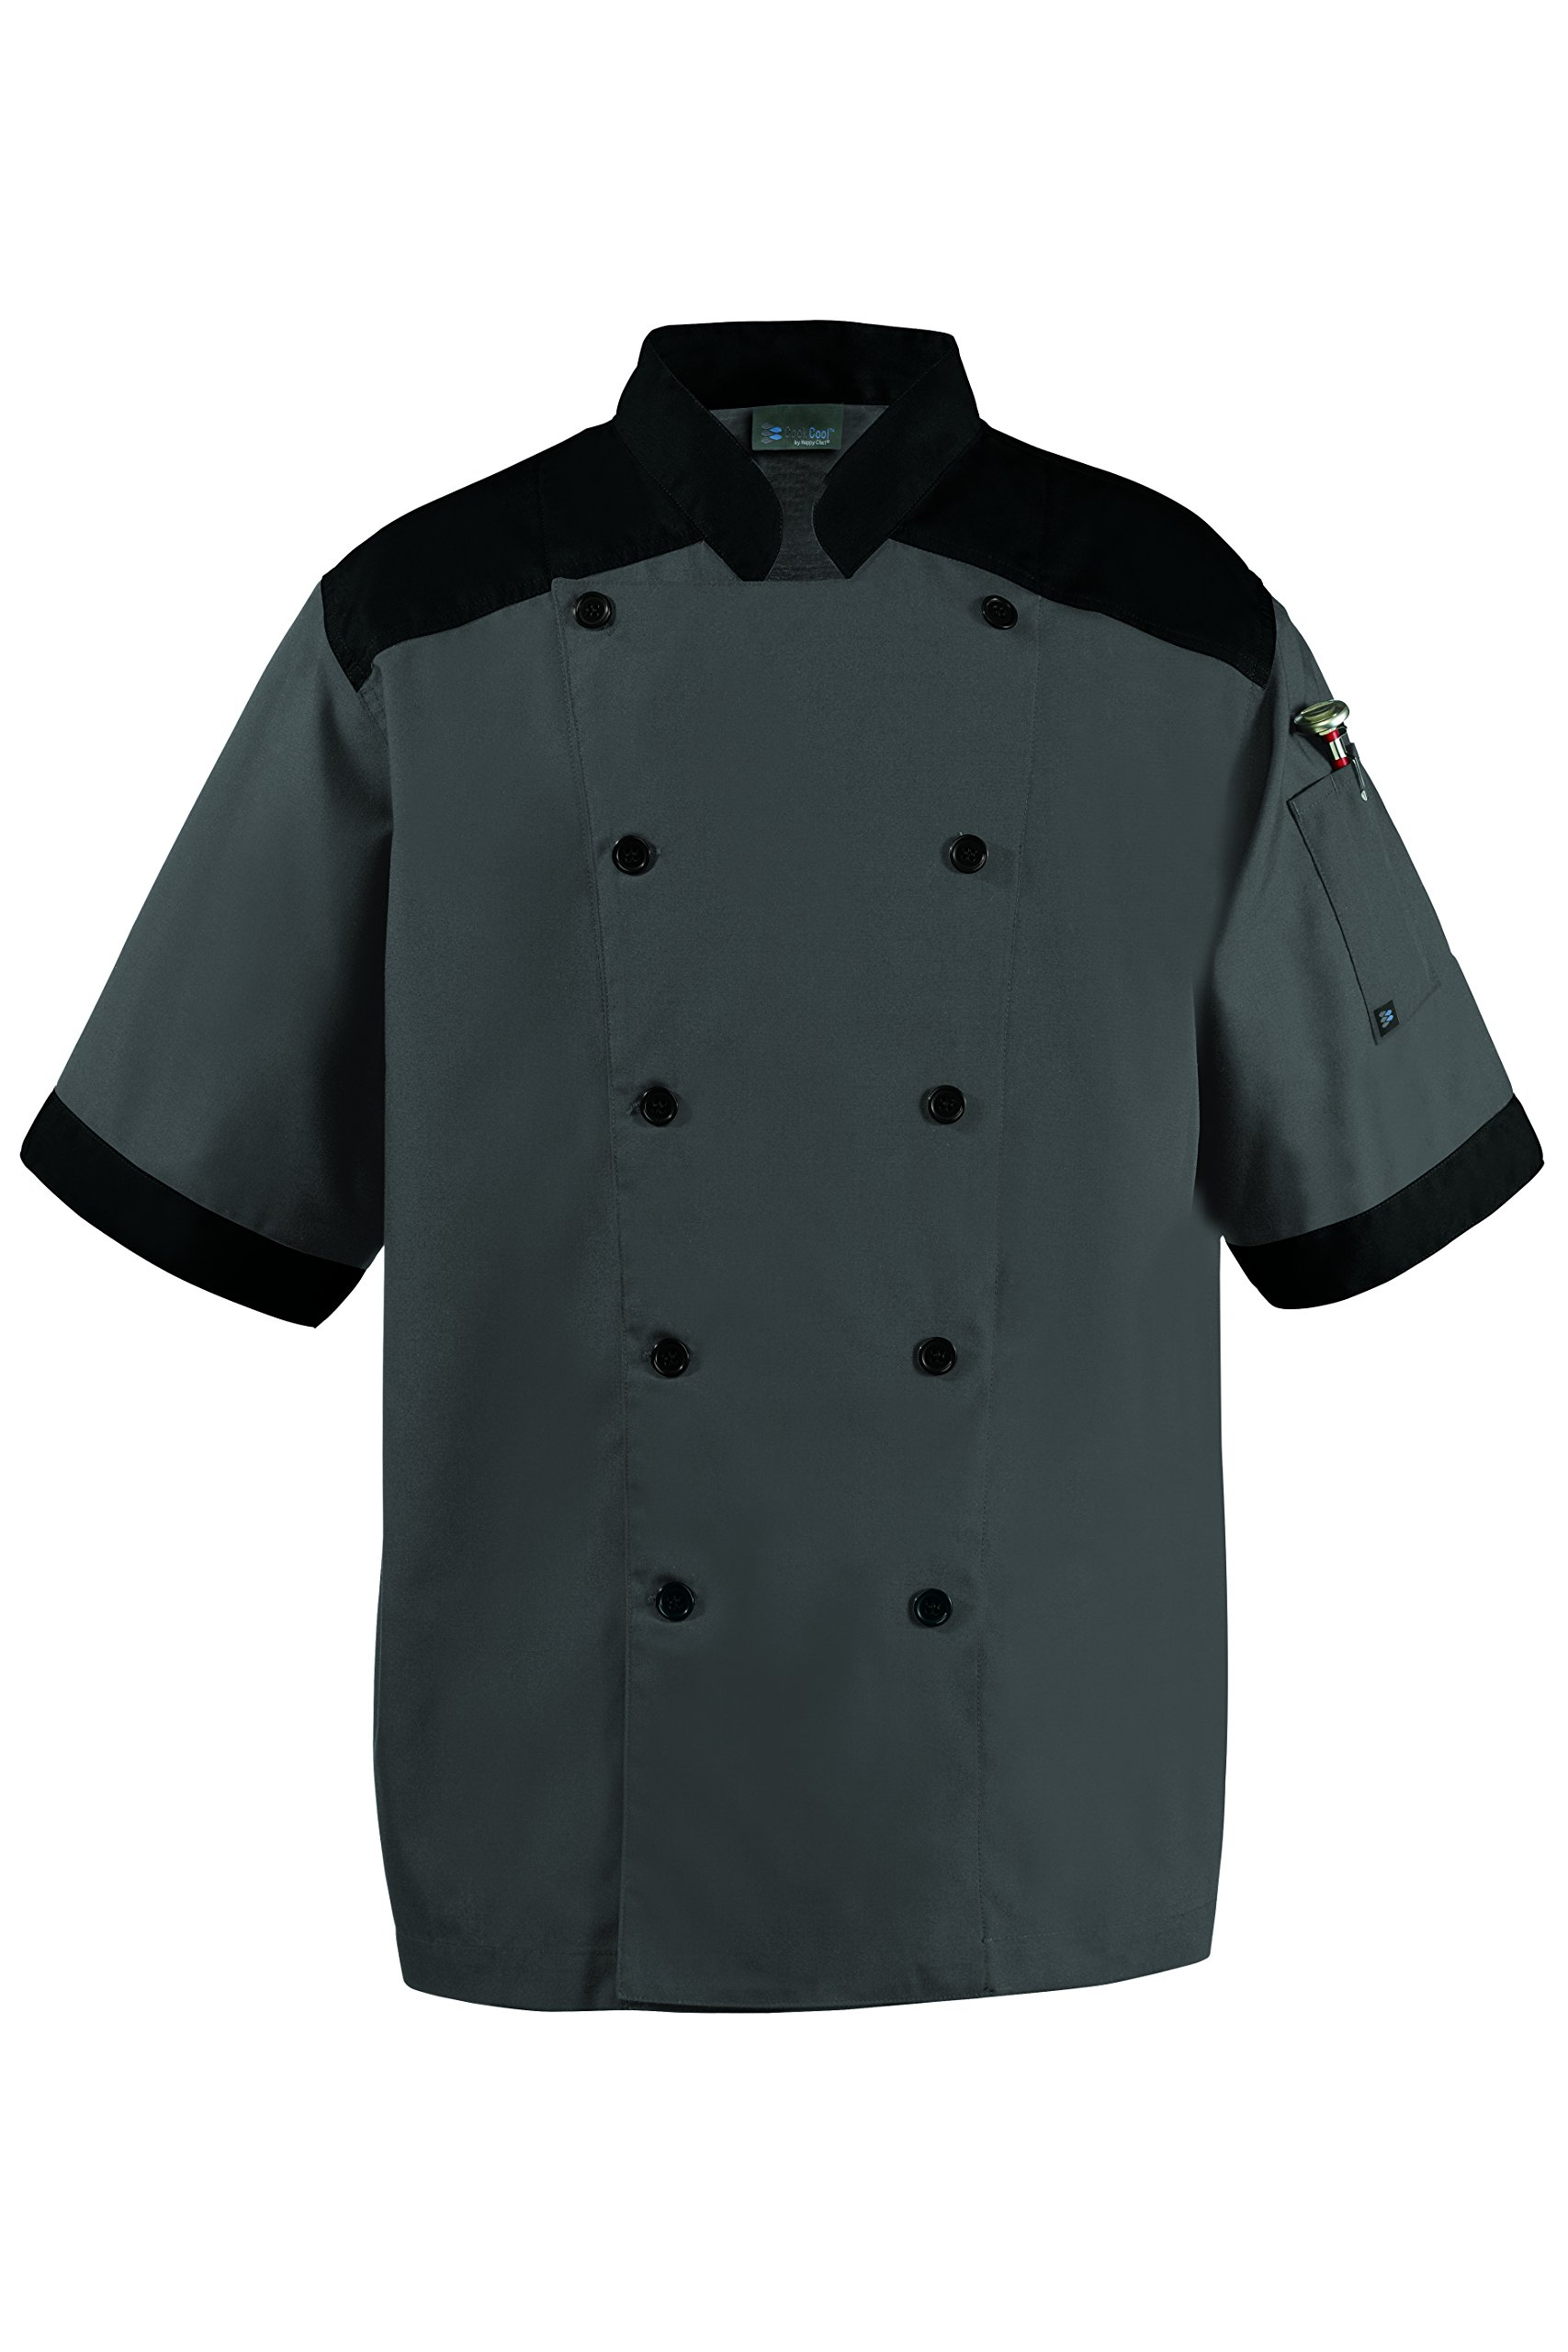 CookCool Top Trim Chef Coat Large Charcoal by Happy Chef